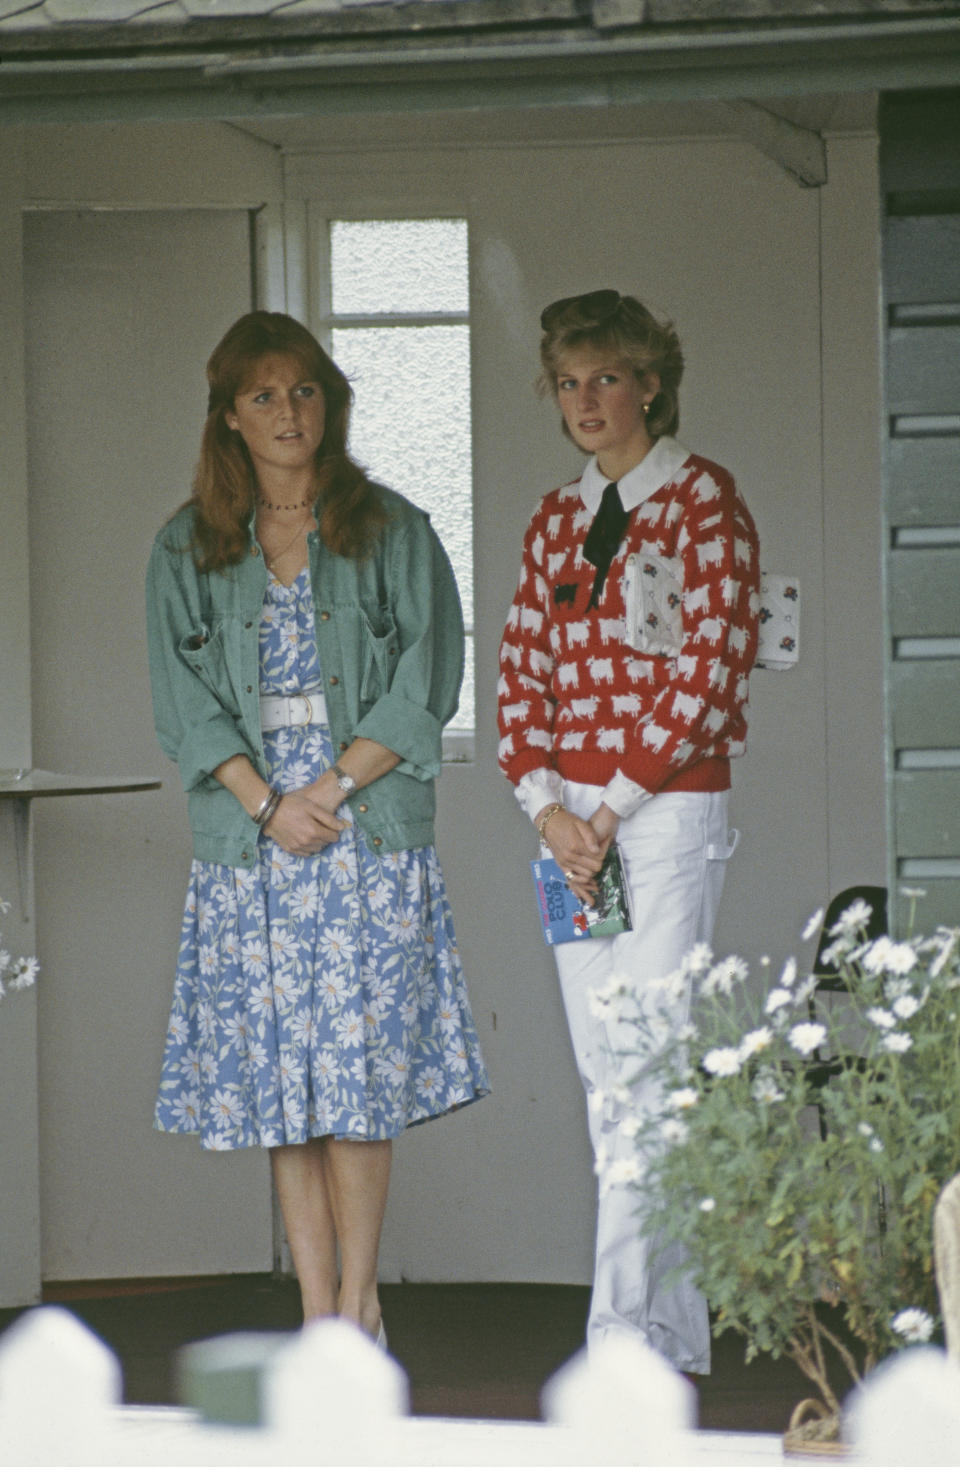 Diana, Princess of Wales  (1961 - 1997) with her friend Sarah Ferguson at a polo match at Smith's Lawn, Guards Polo Club, Windsor, June 1983. Diana is wearing a Muir and Osborne 'black sheep' sweater. (Photo by Princess Diana Archive/Getty Images)